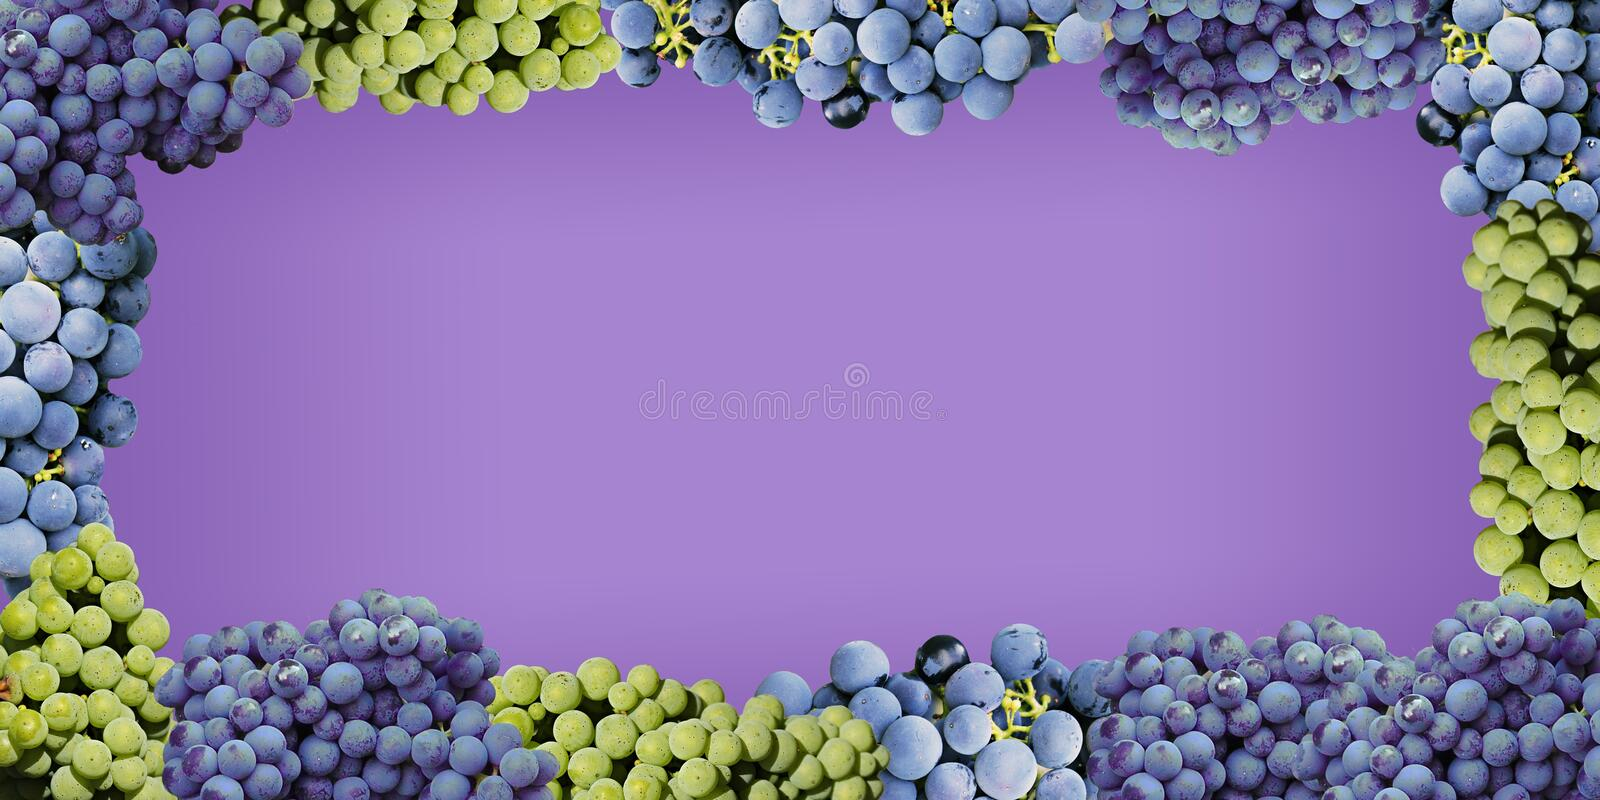 Juicy grape style on a purple background royalty free stock photography